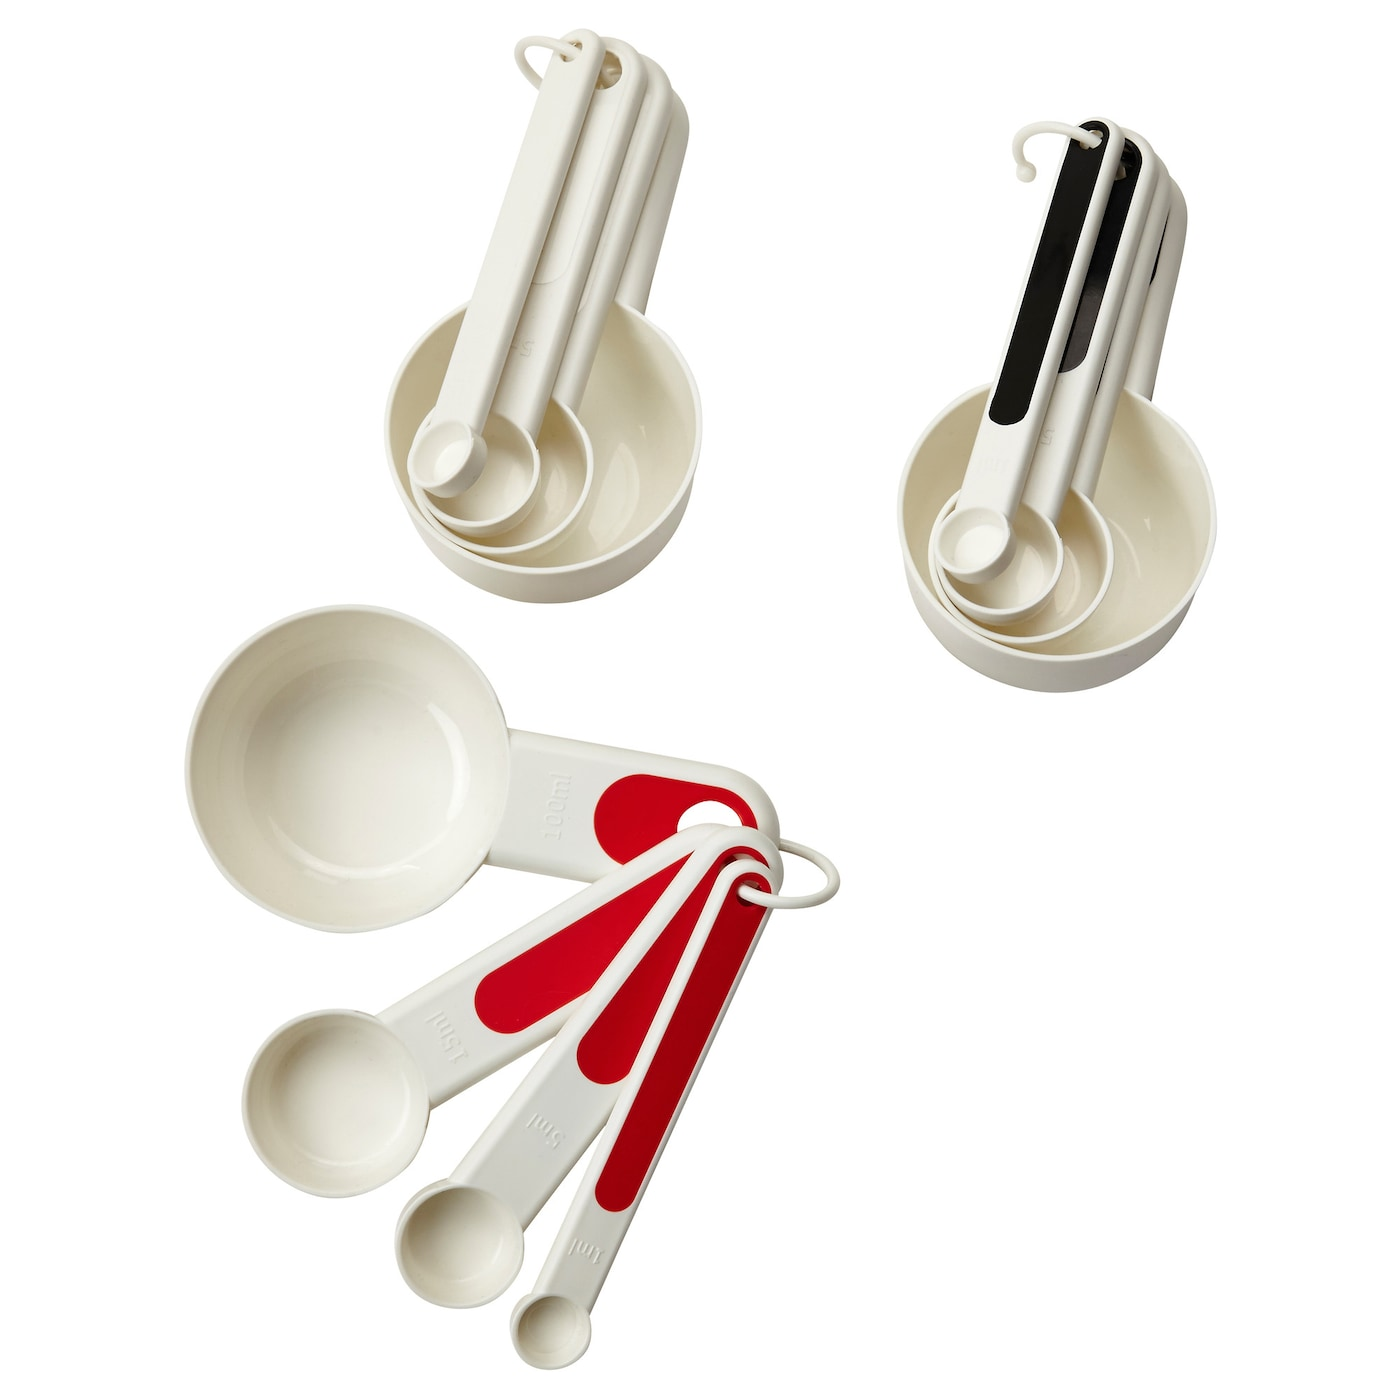 Egg Timers Kitchen Scales Measuring Jugs Ikea